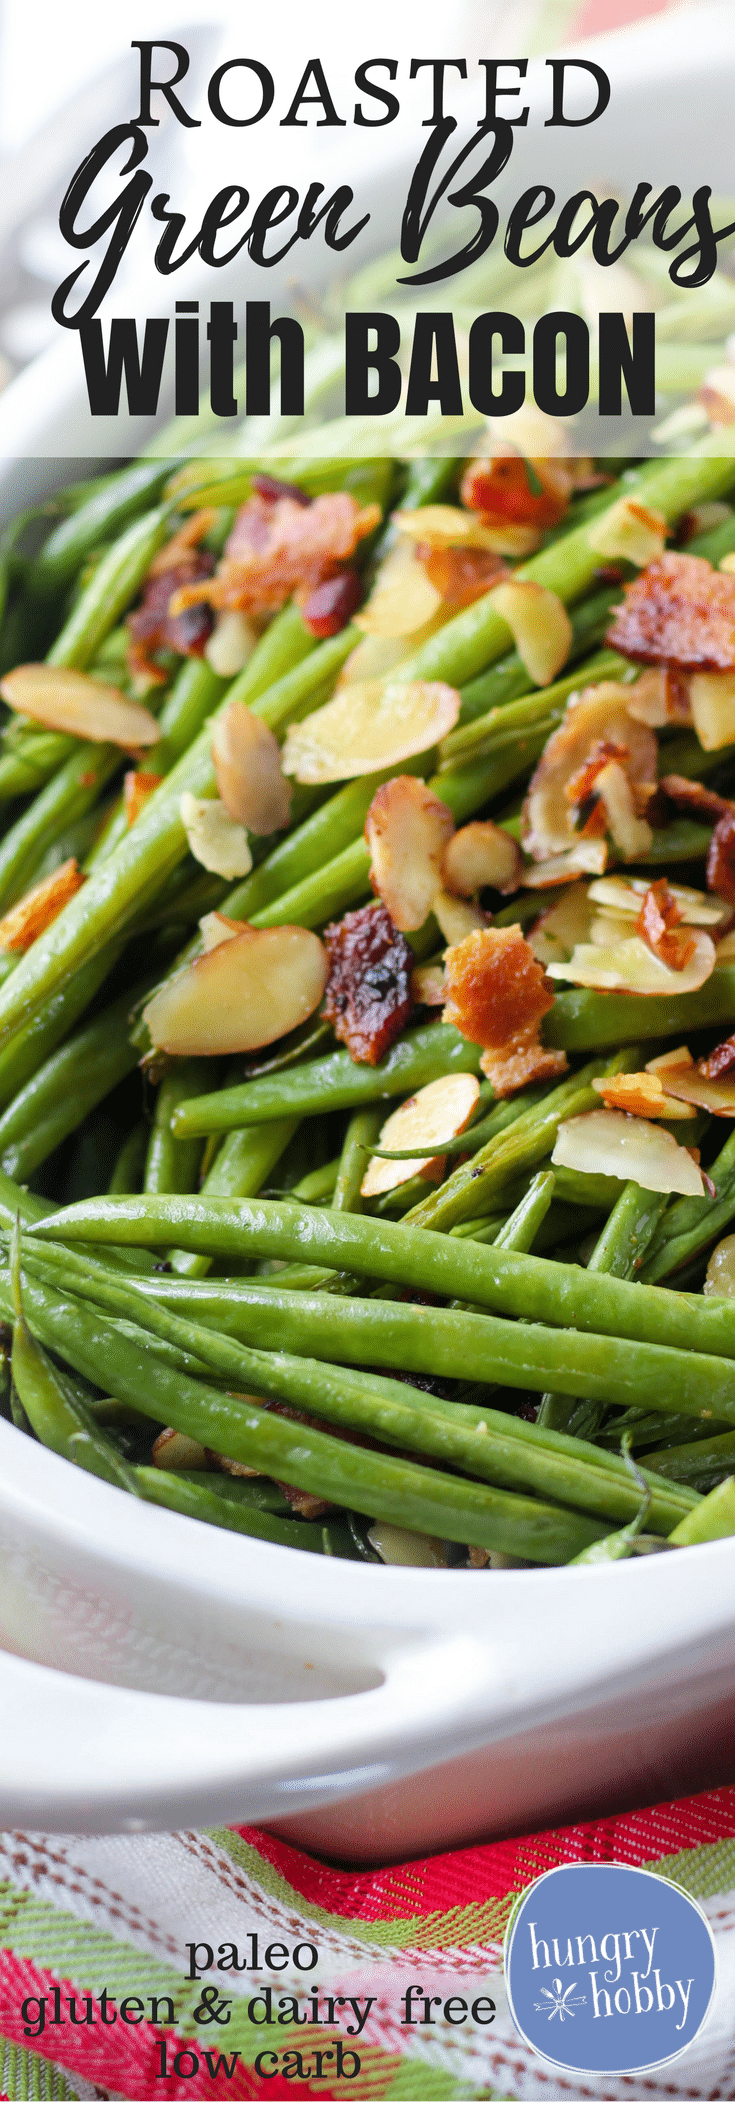 bacon-green-beans-paleo-recipe-via-hungryhobby-net